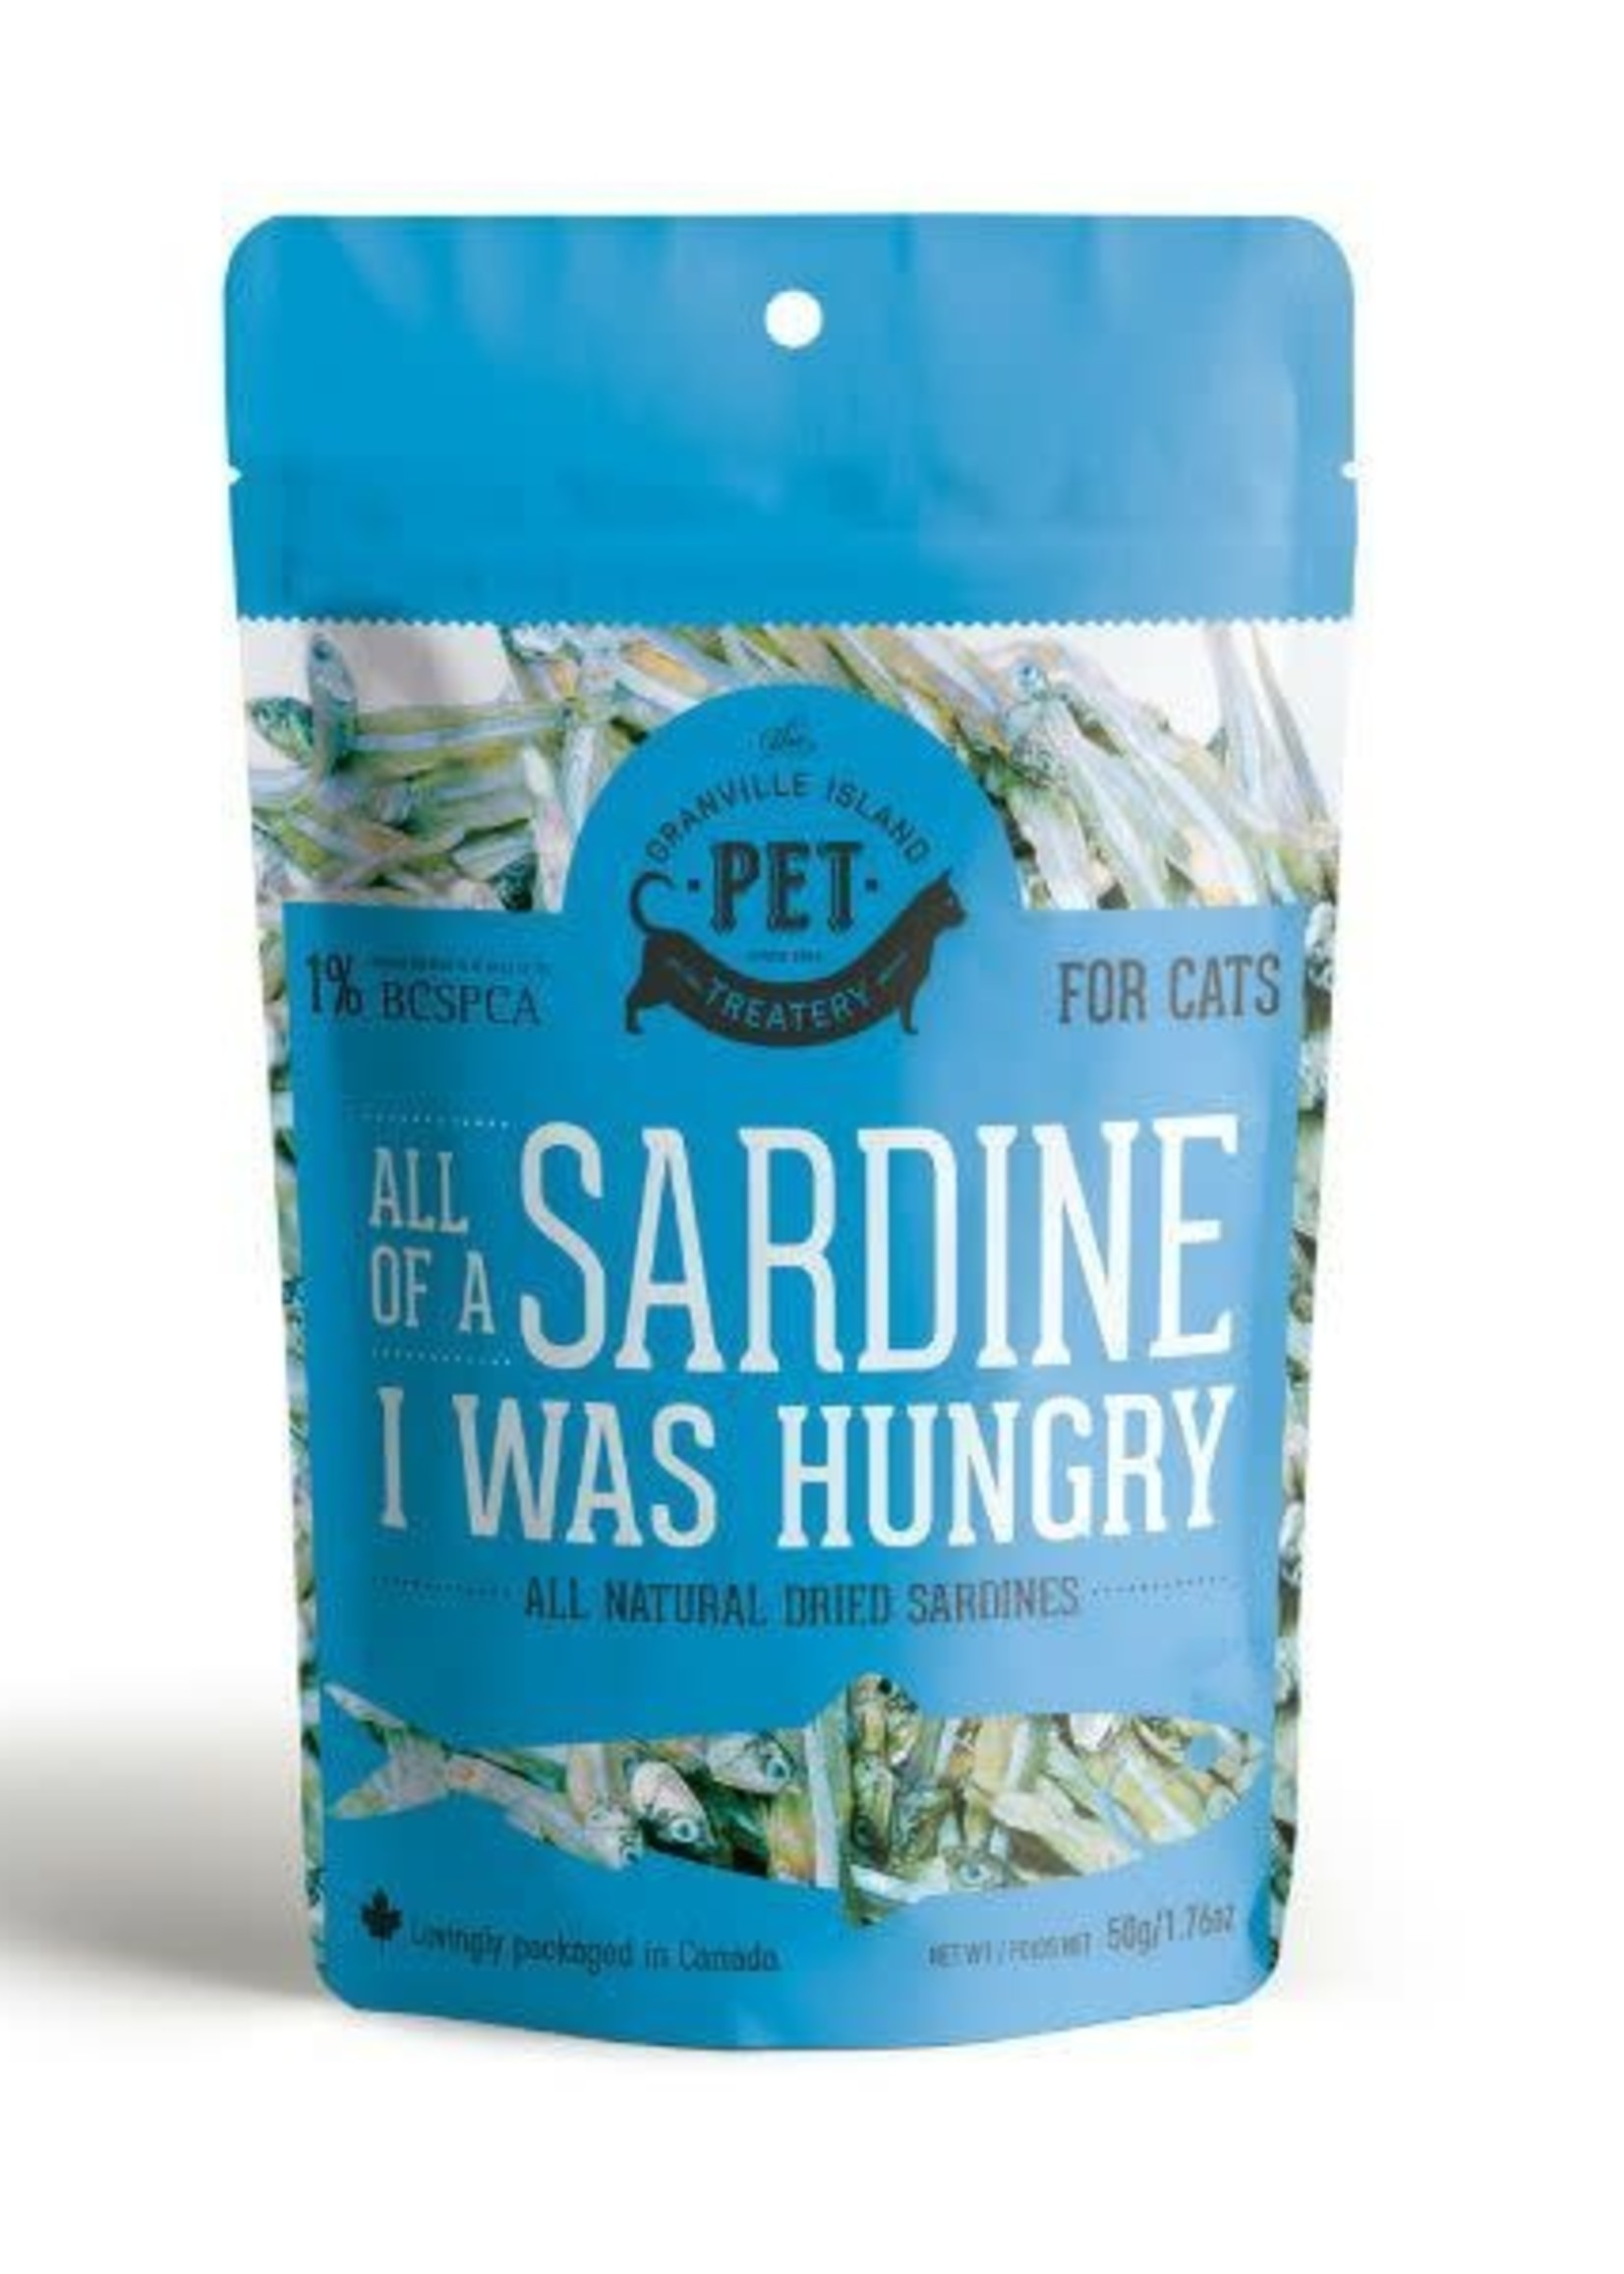 The Granville Island Pet Treatery Granville Island Pet Treatery All of a Sardine I was Hungry 50g